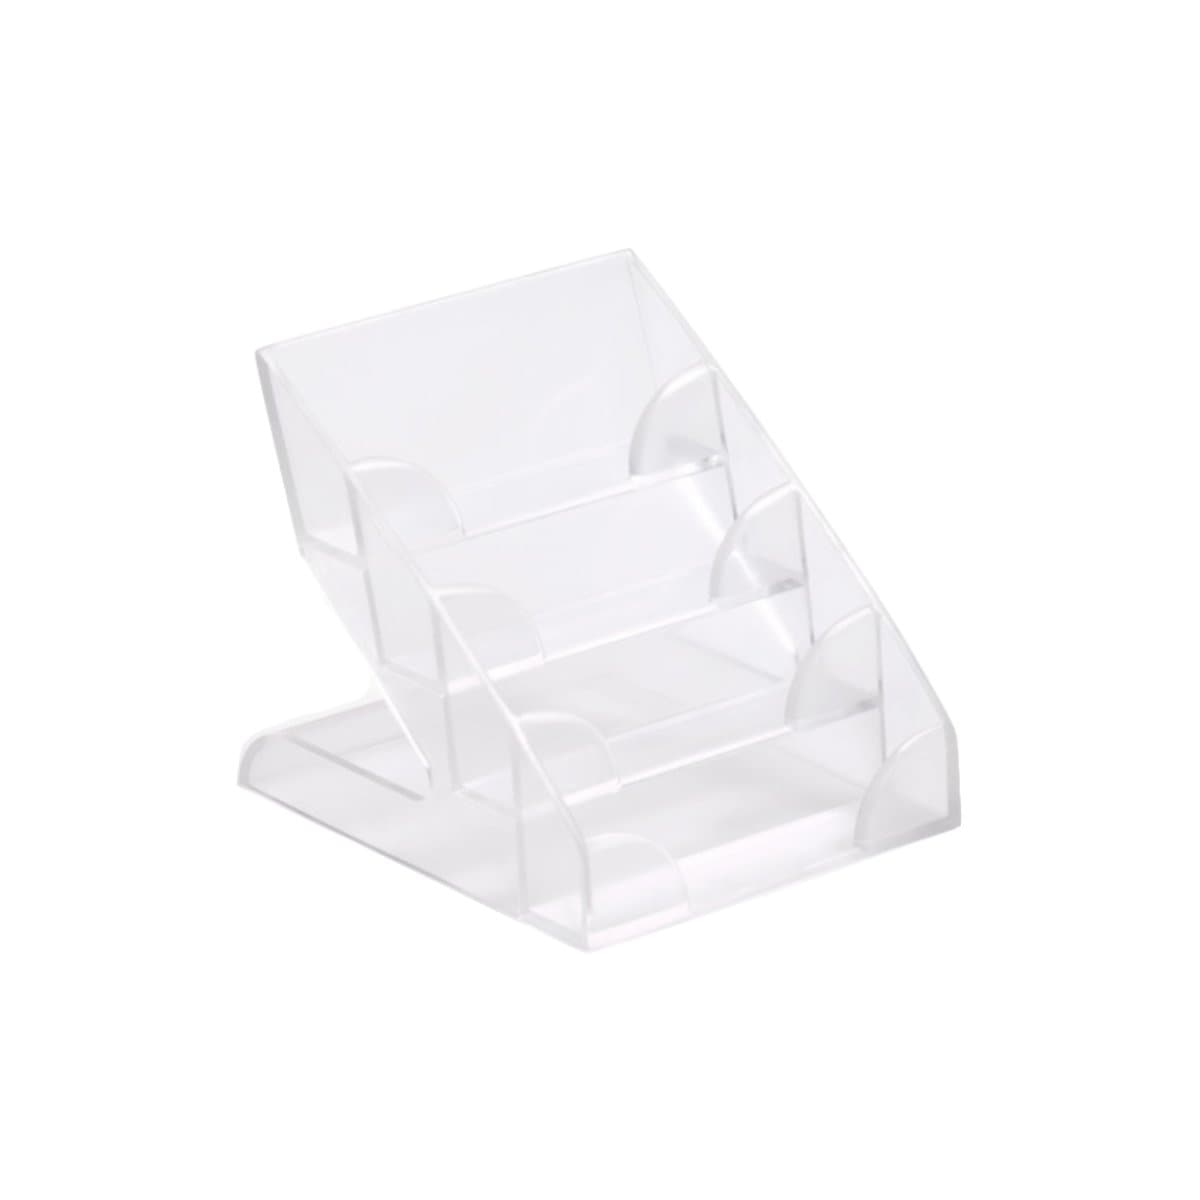 Durable Business Card Display Holder, 4 Tier